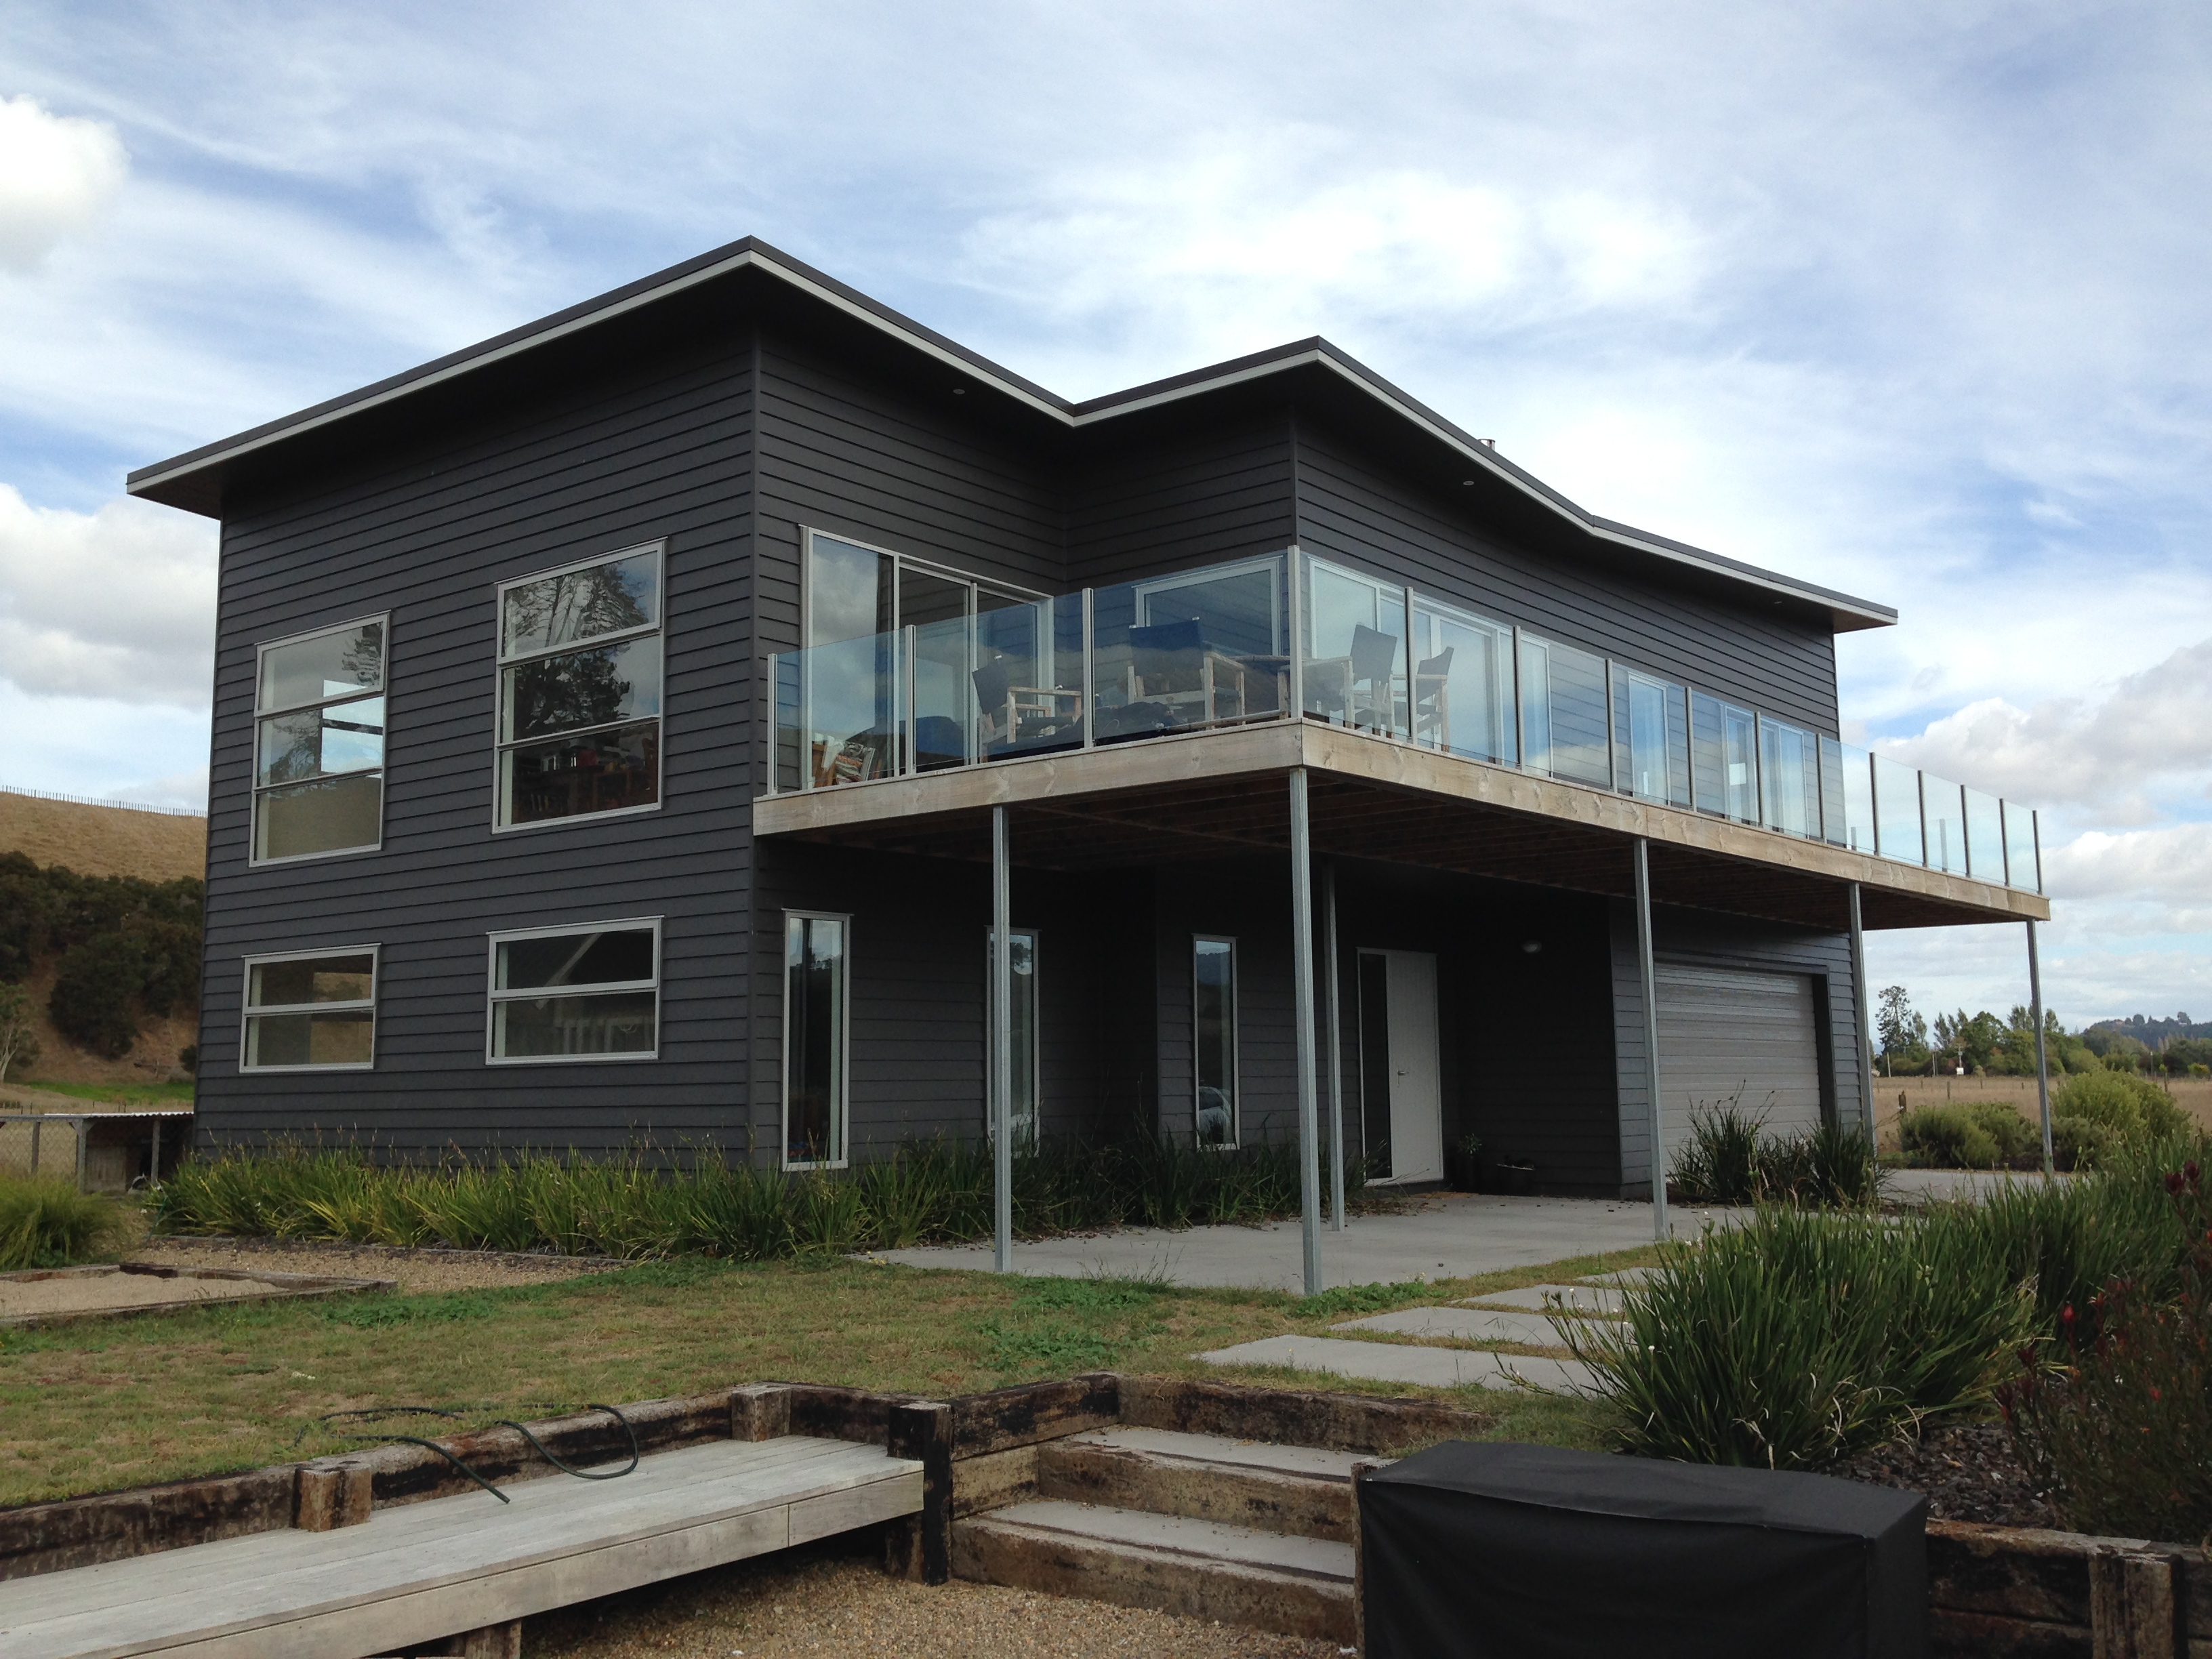 Resene cool colours paint lake side karapiro authentic finishings ltd - Exterior paint colours nz image ...